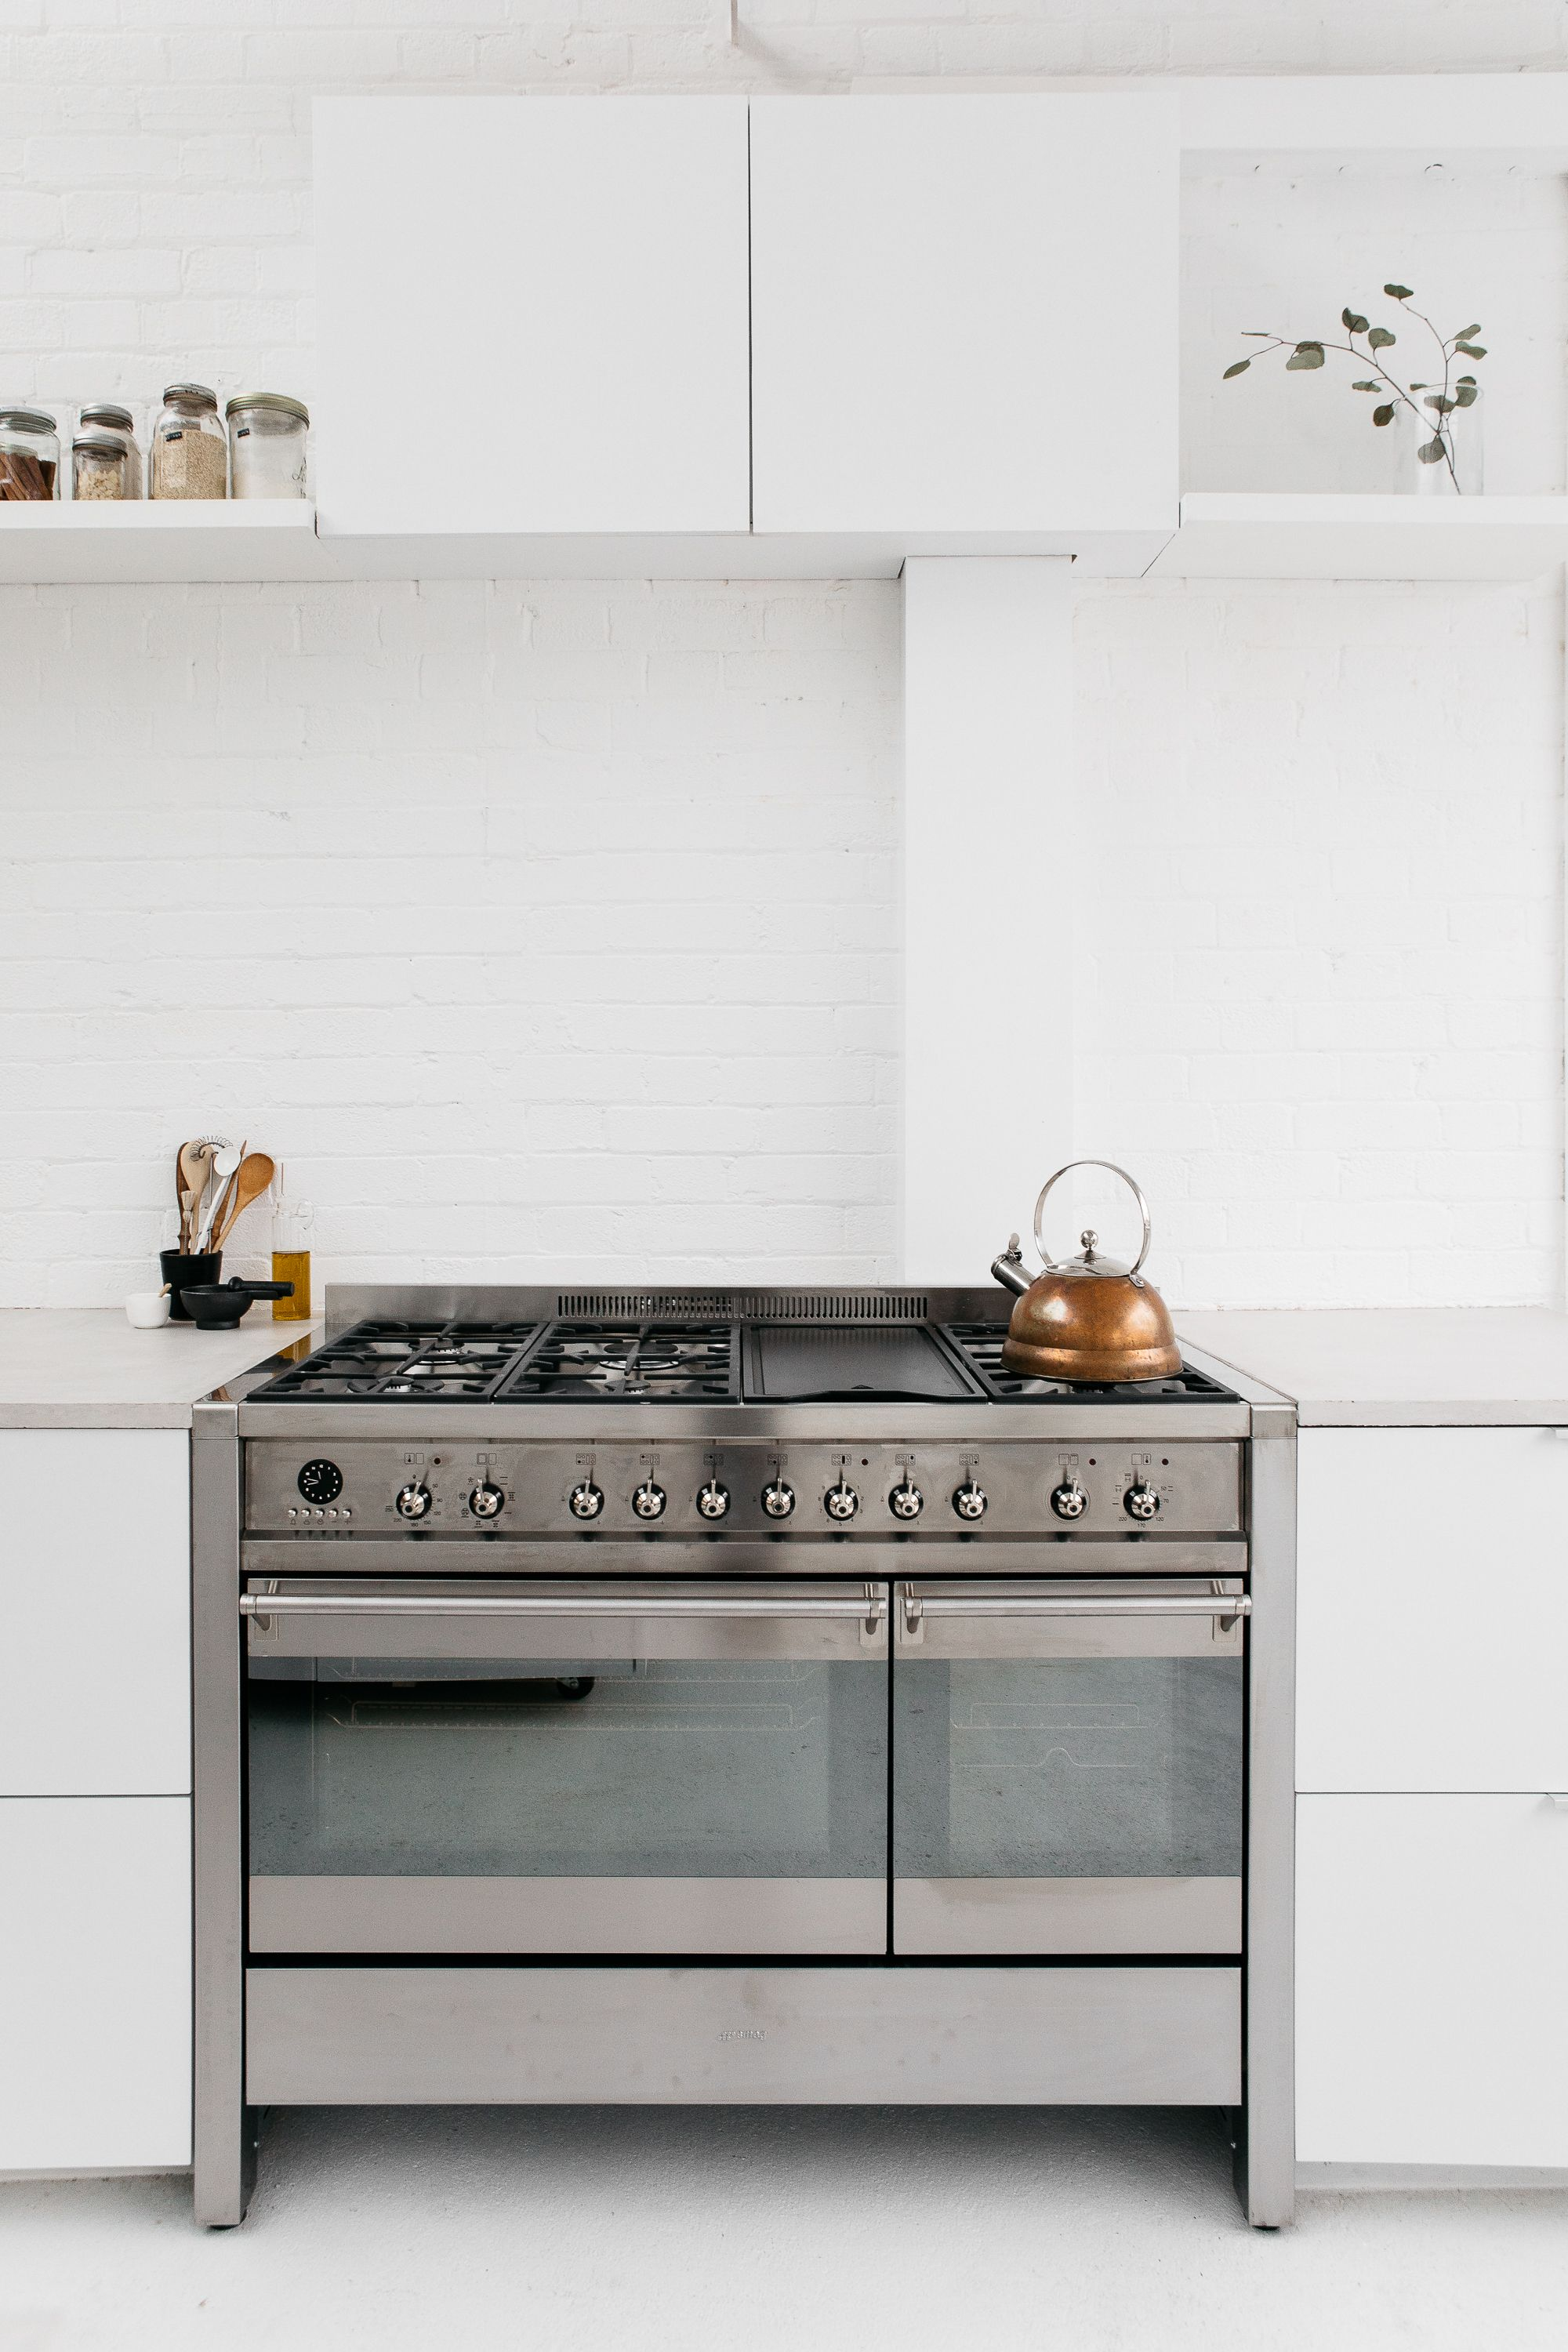 the 25 best smeg range ideas on pinterest smeg cookers range cooker kitchen and kitchen with range cooker